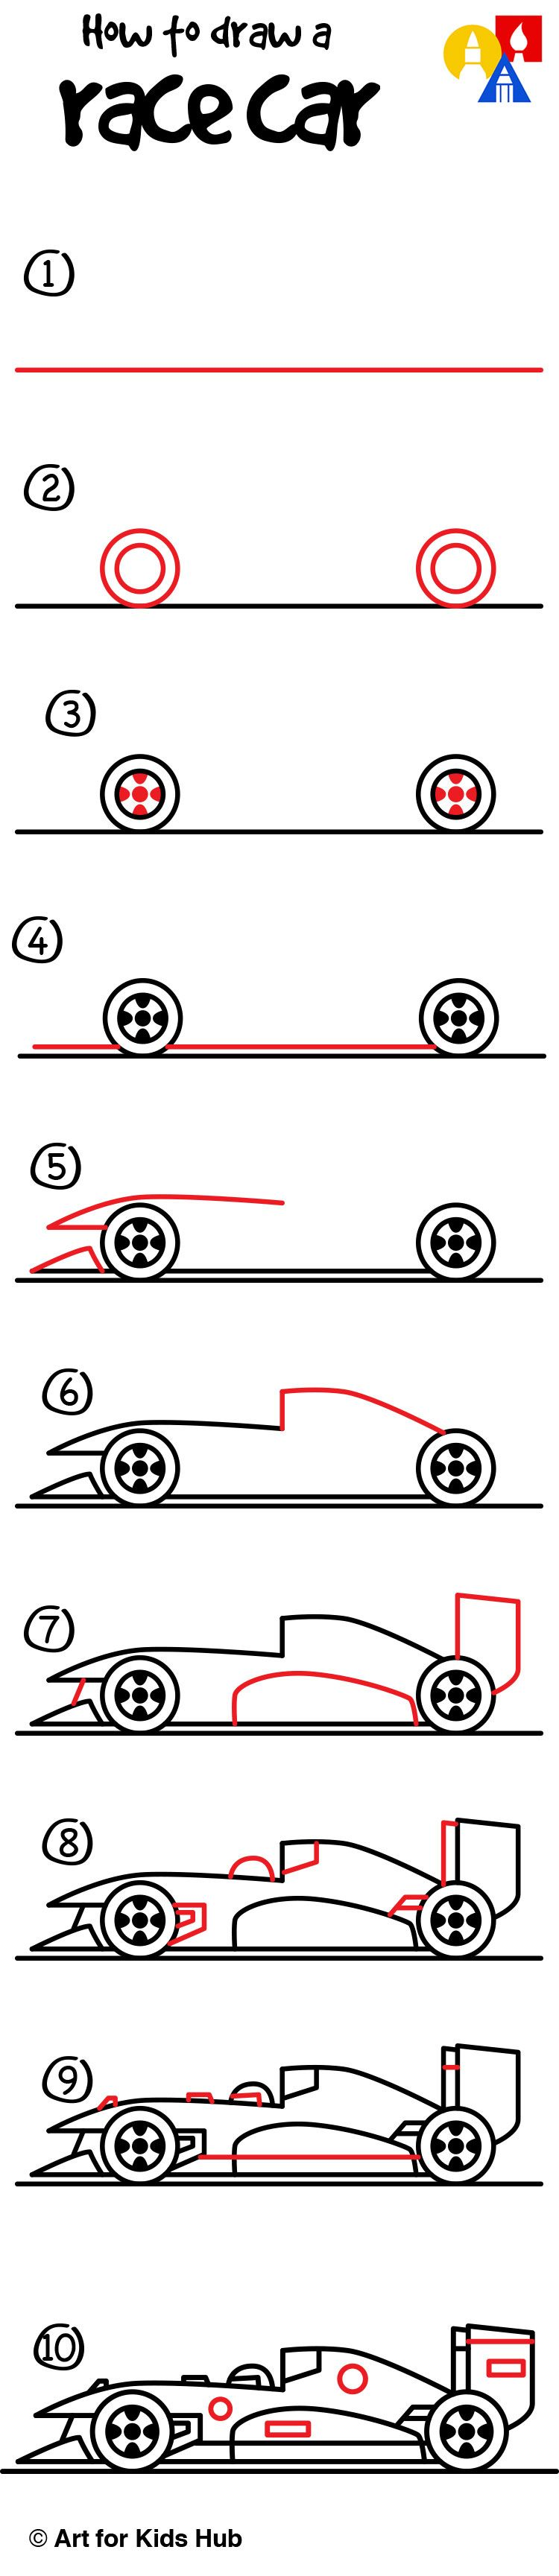 How To Draw A Race Car Art For Kids Hub Cars Drawings And